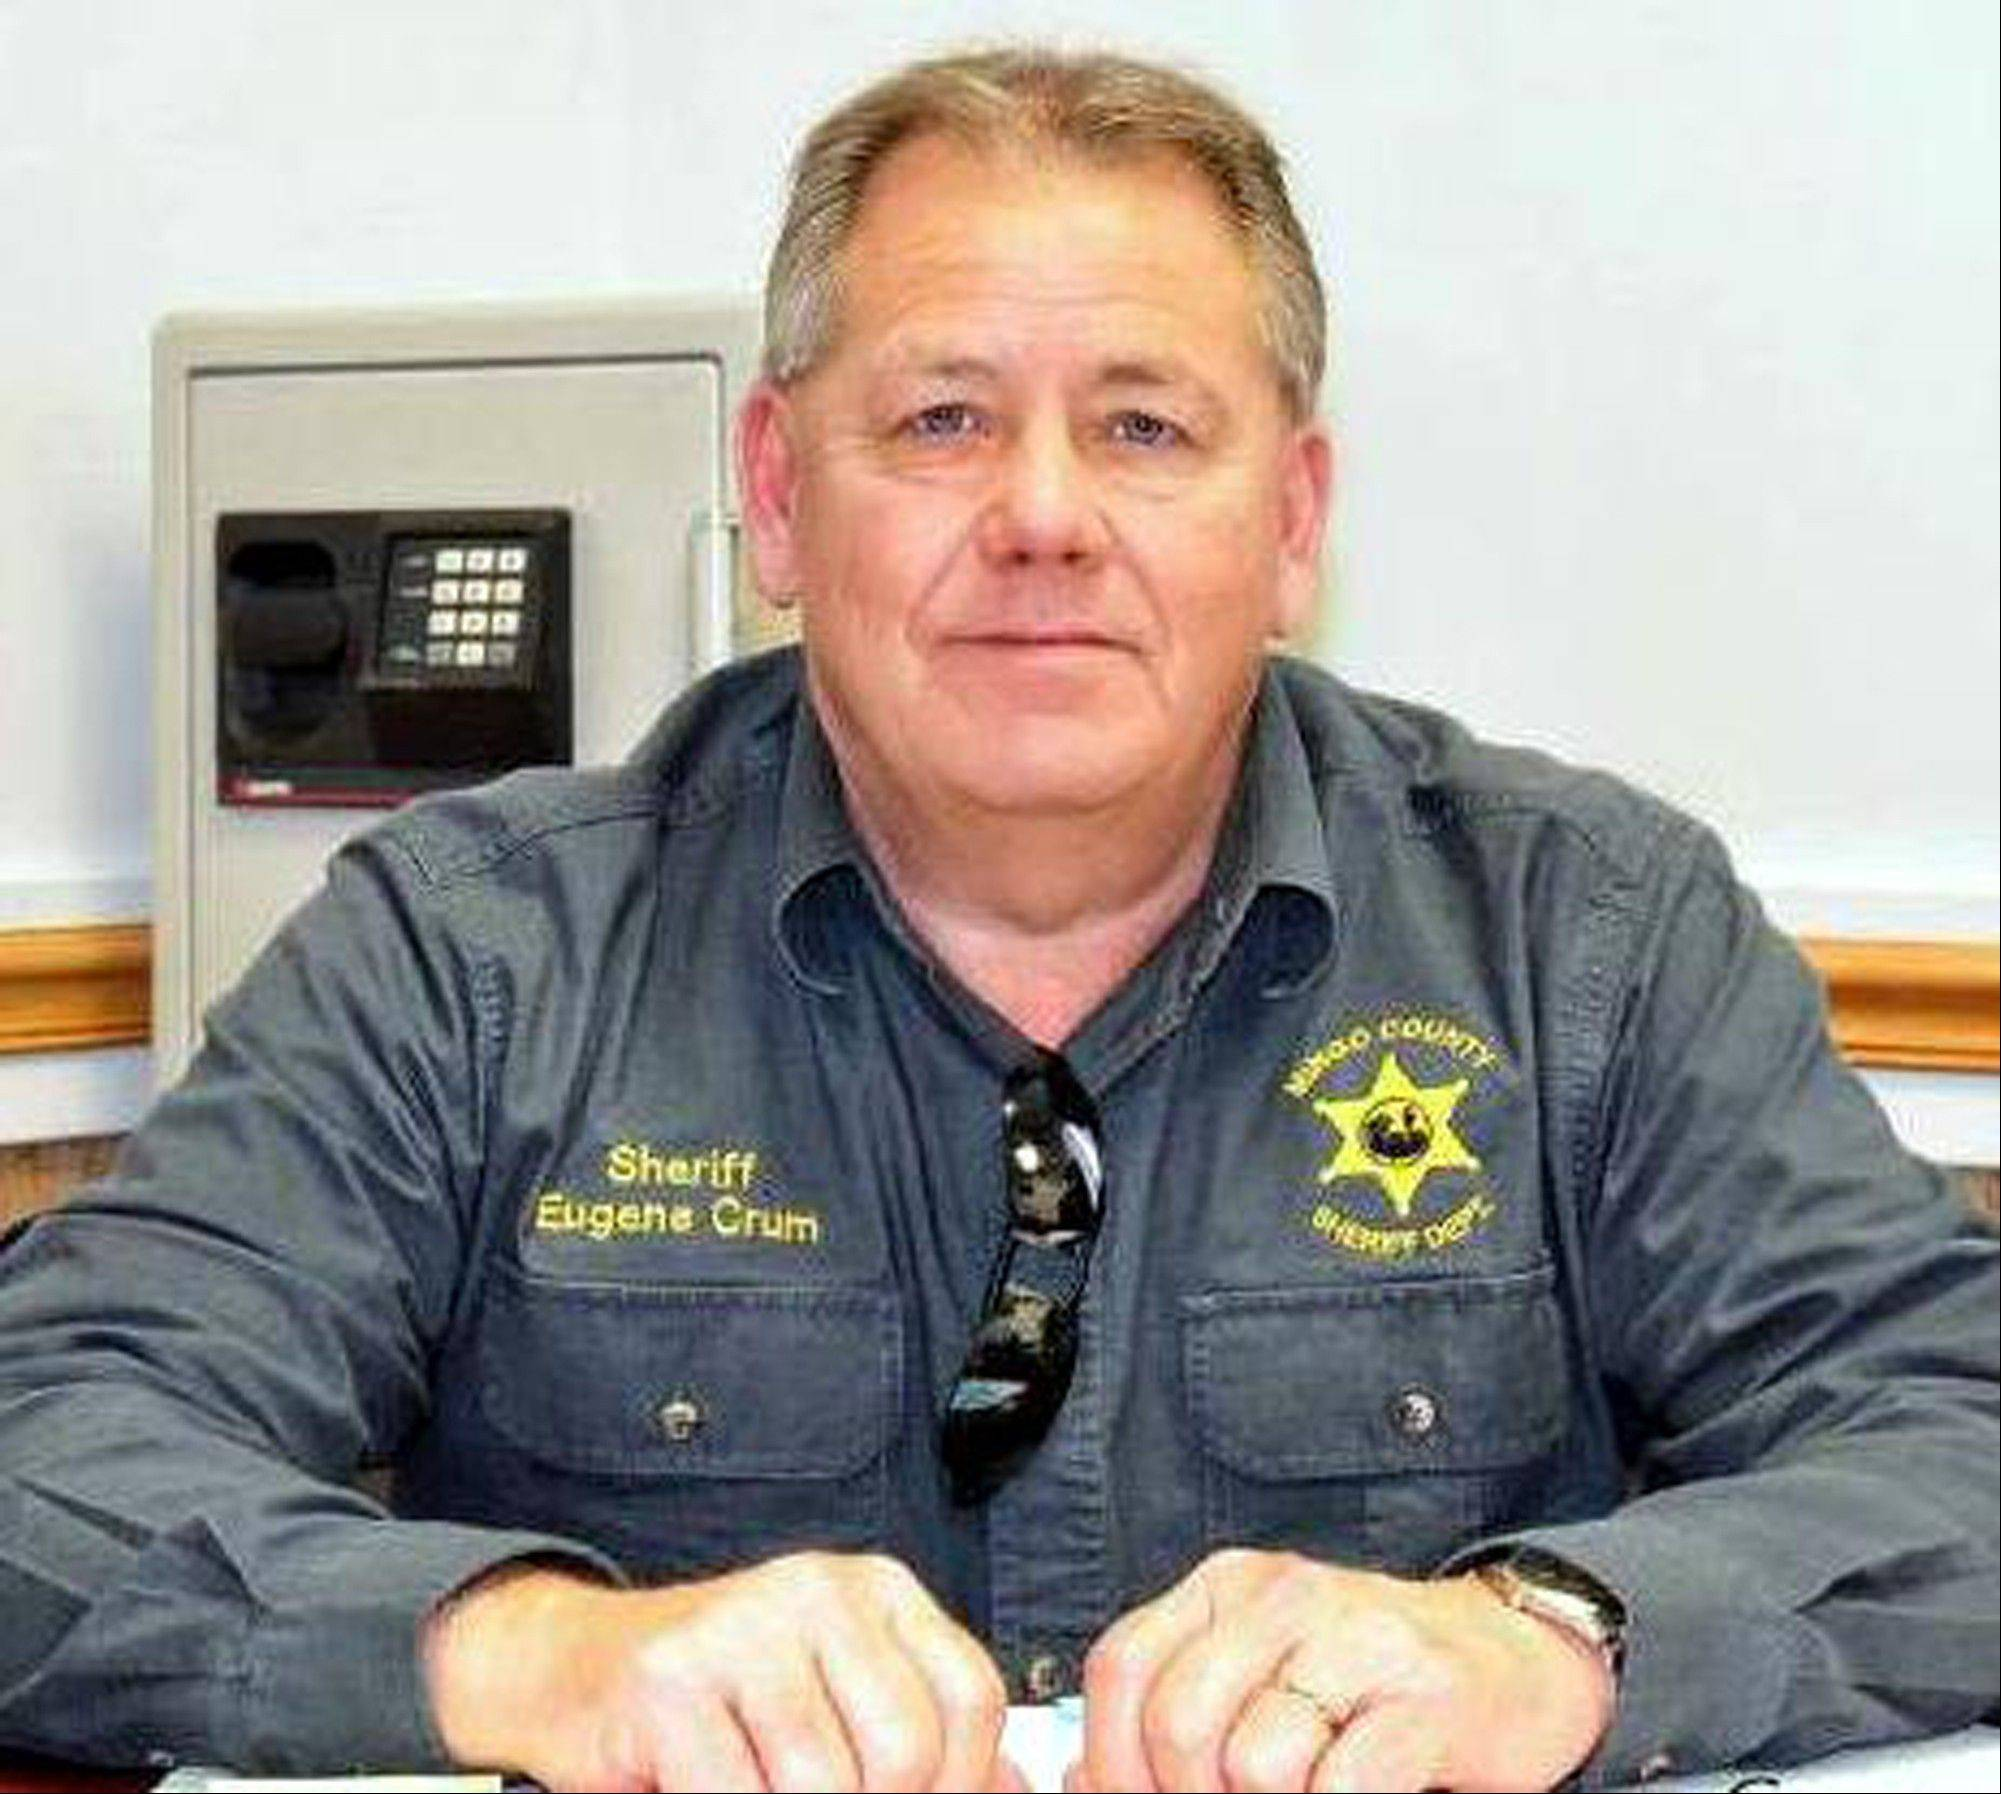 Associated Press Mingo County Sheriff Eugene Crum was gunned down Wednesday, April 3, 2013, in the spot where he usually parked and ate lunch in Williamson, W.Va.